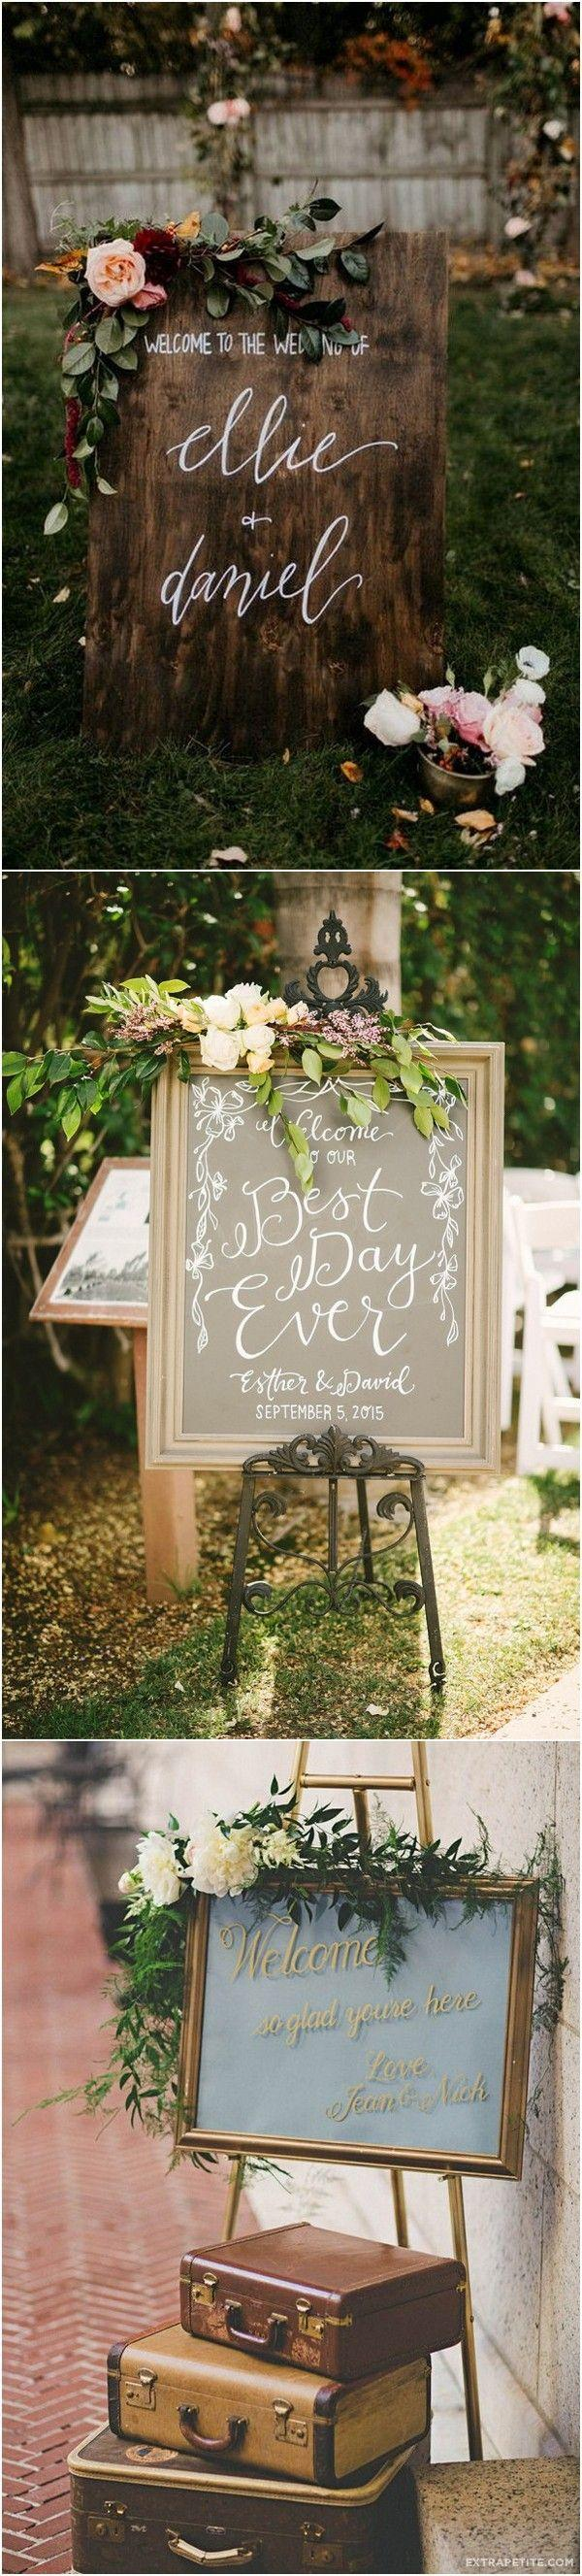 Wedding - 20 Brilliant Wedding Welcome Sign Ideas For Ceremony And Reception - Page 3 Of 3